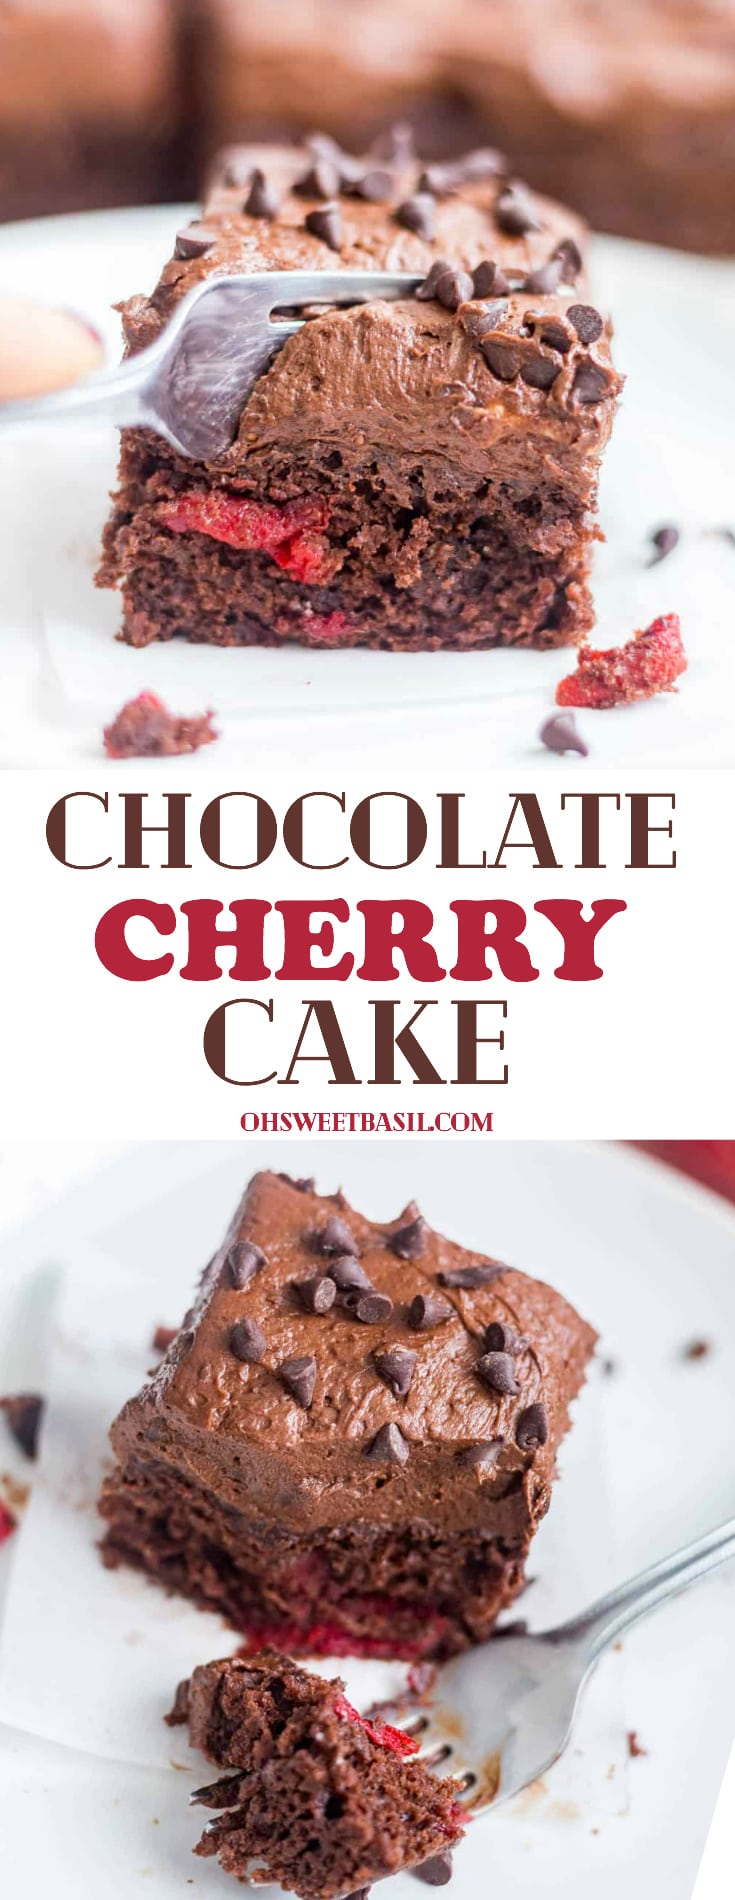 A moist Chocolate Cherry Cake with a chocolate fudgy frosting on top